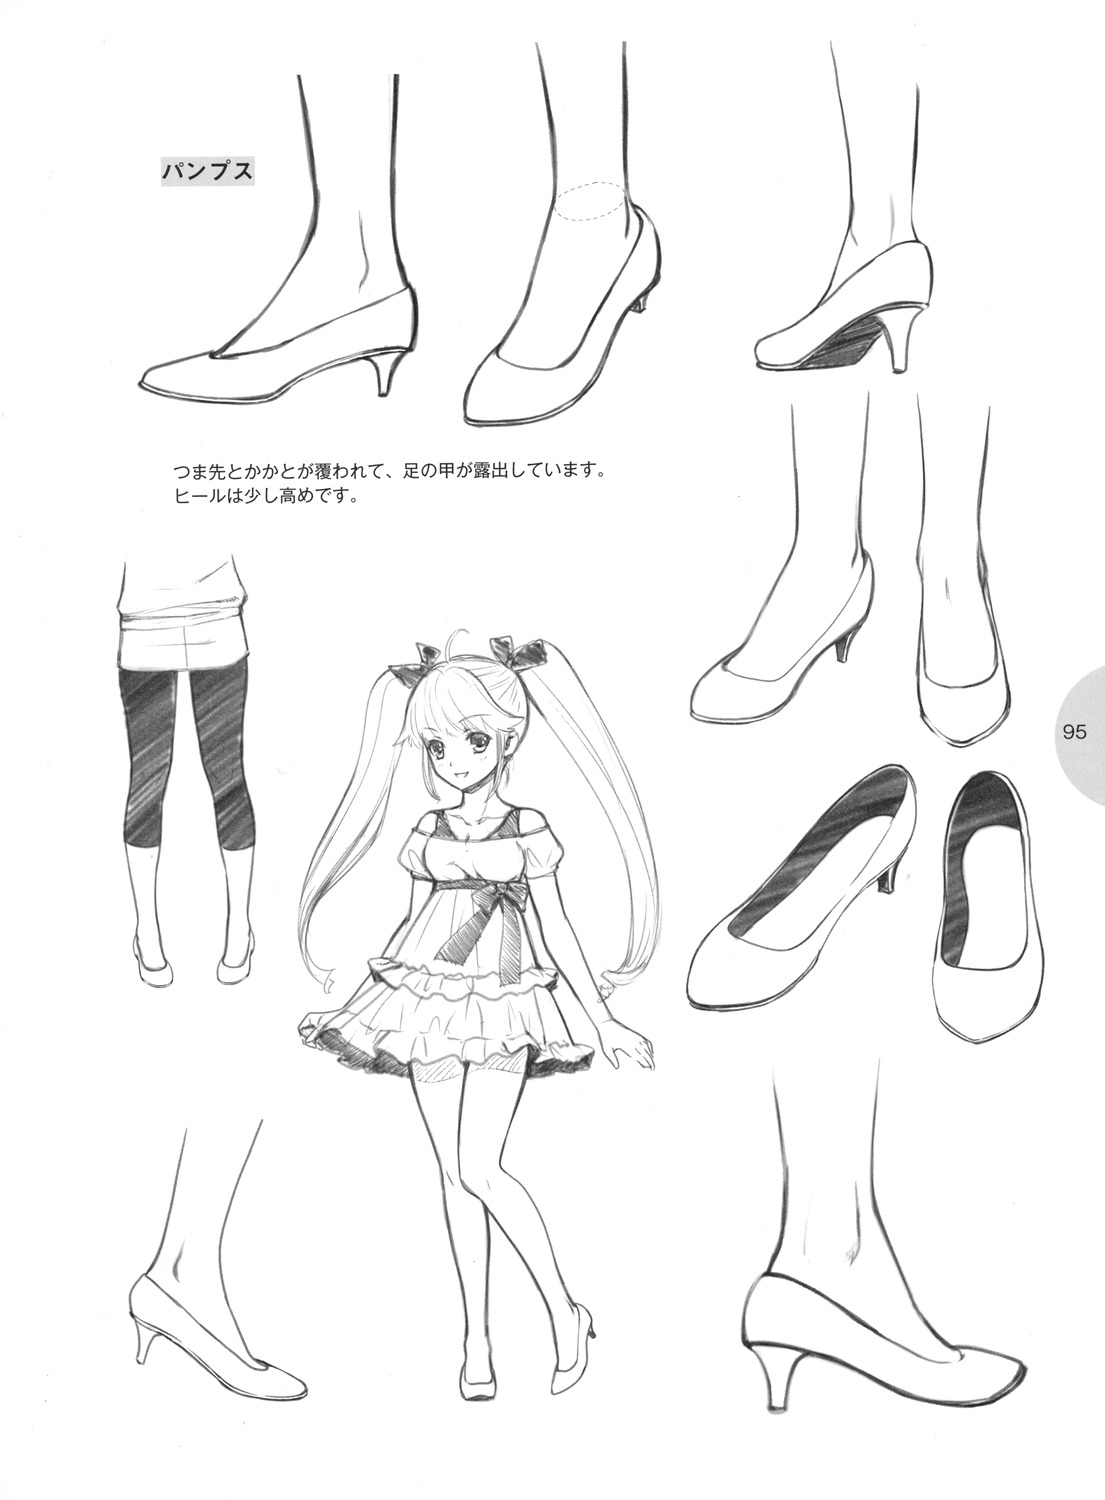 Drawn shoe cartoon Https://www  Drawing 部屋 Shoes